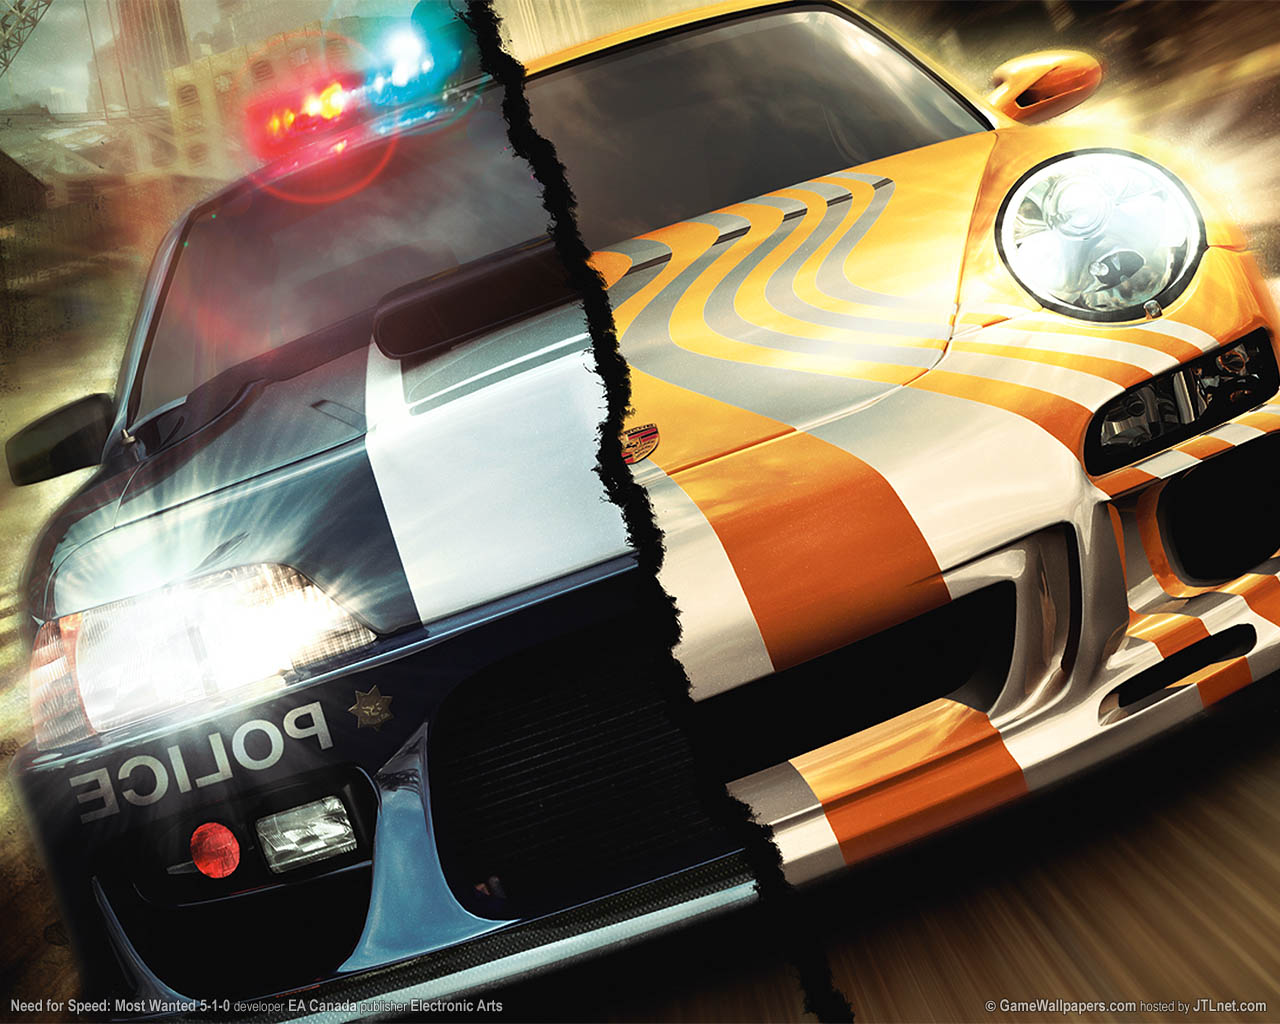 award winning Need for Speed Most Wanted is headed to Nintendo Wii U